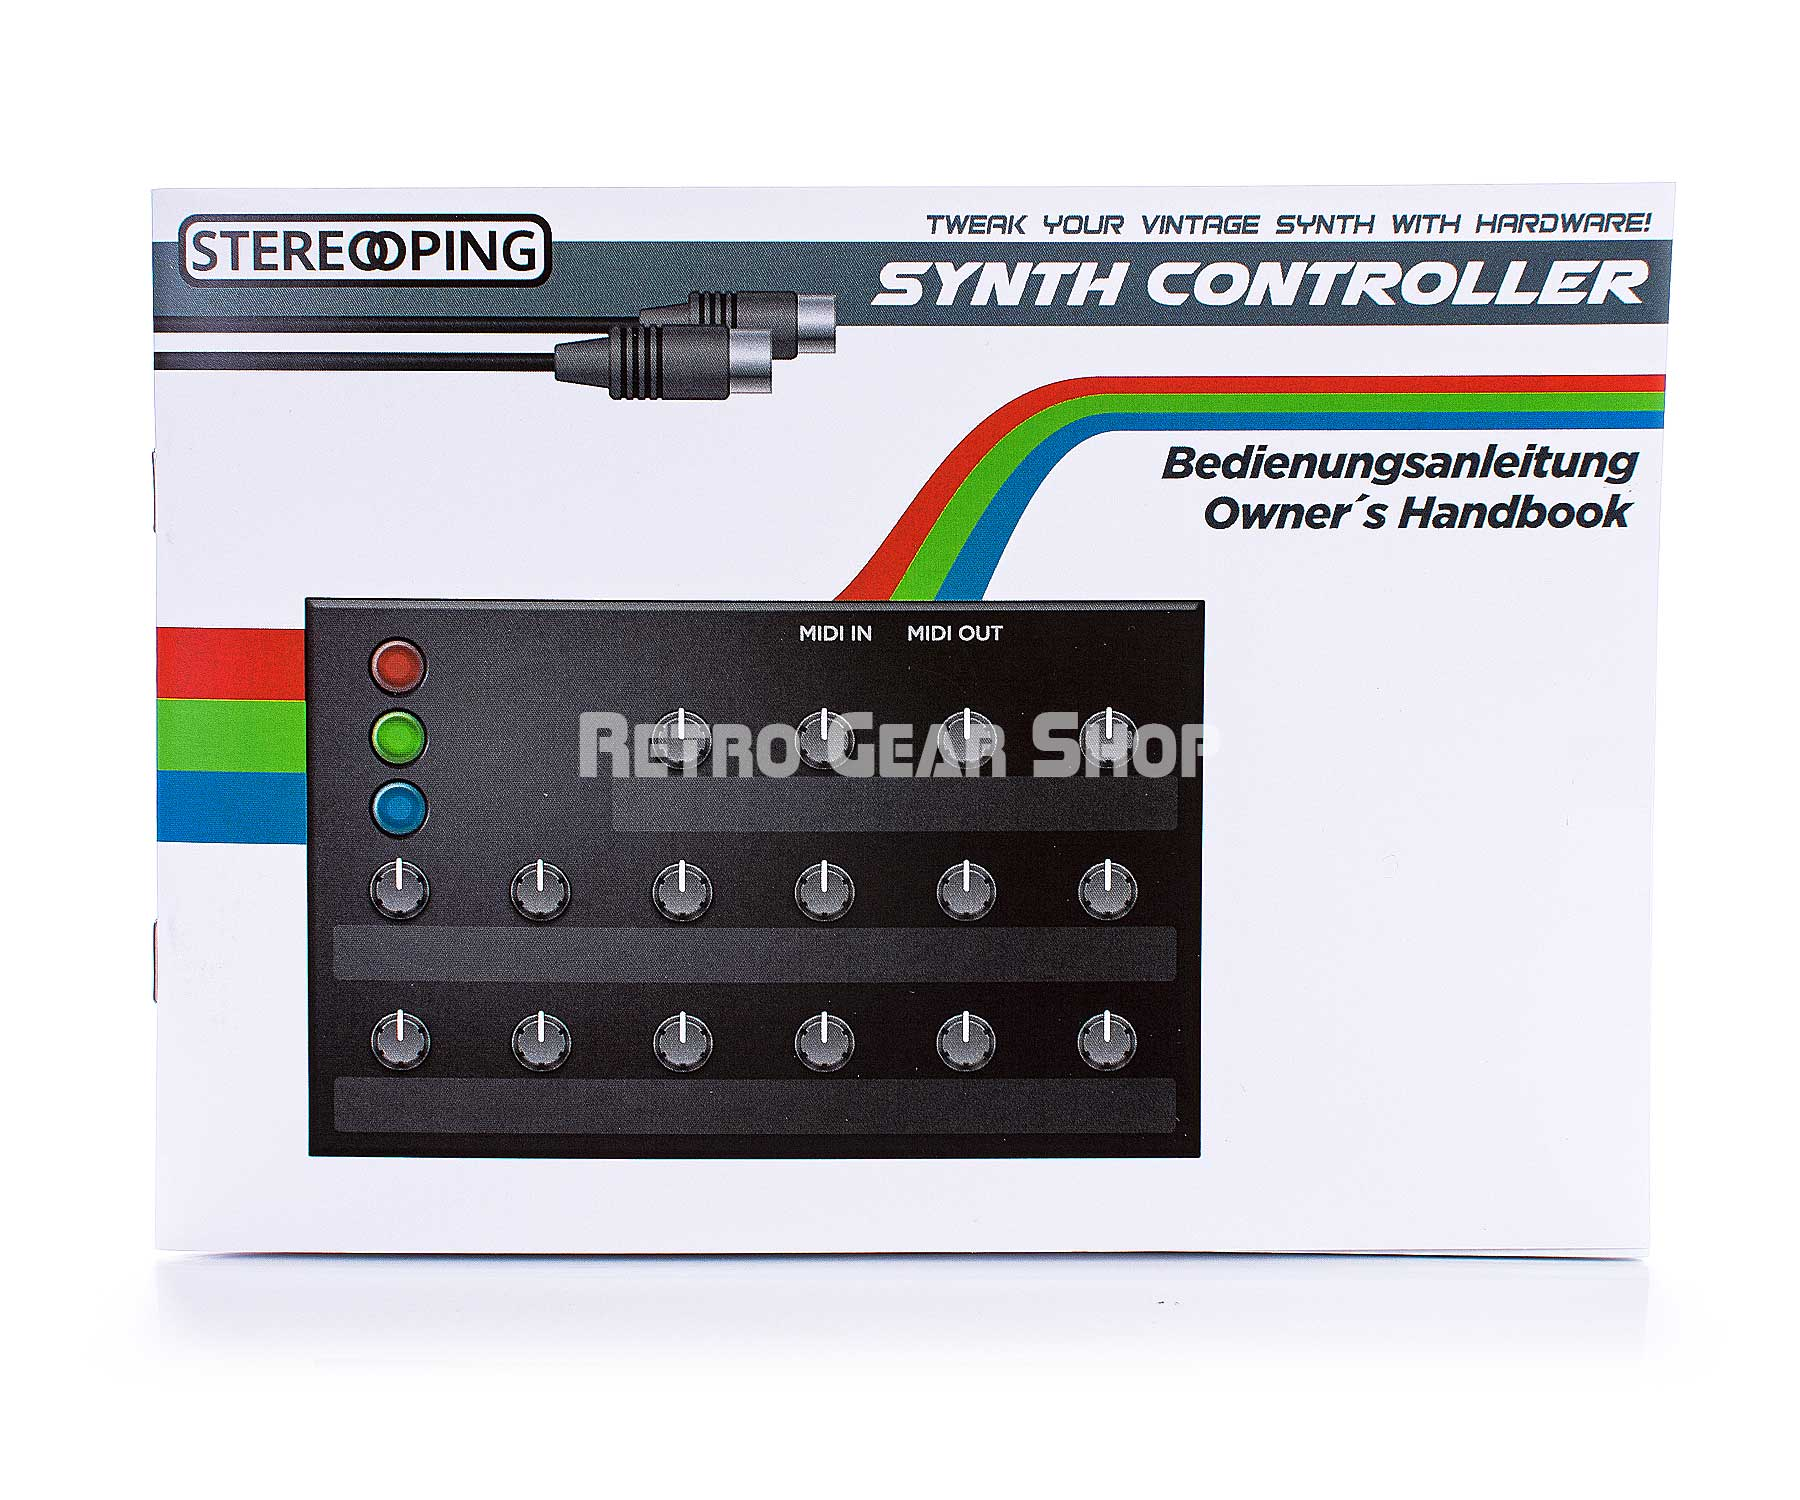 Stereoping CE-1 Revolver Midi Controller for DSI Evolver Manual